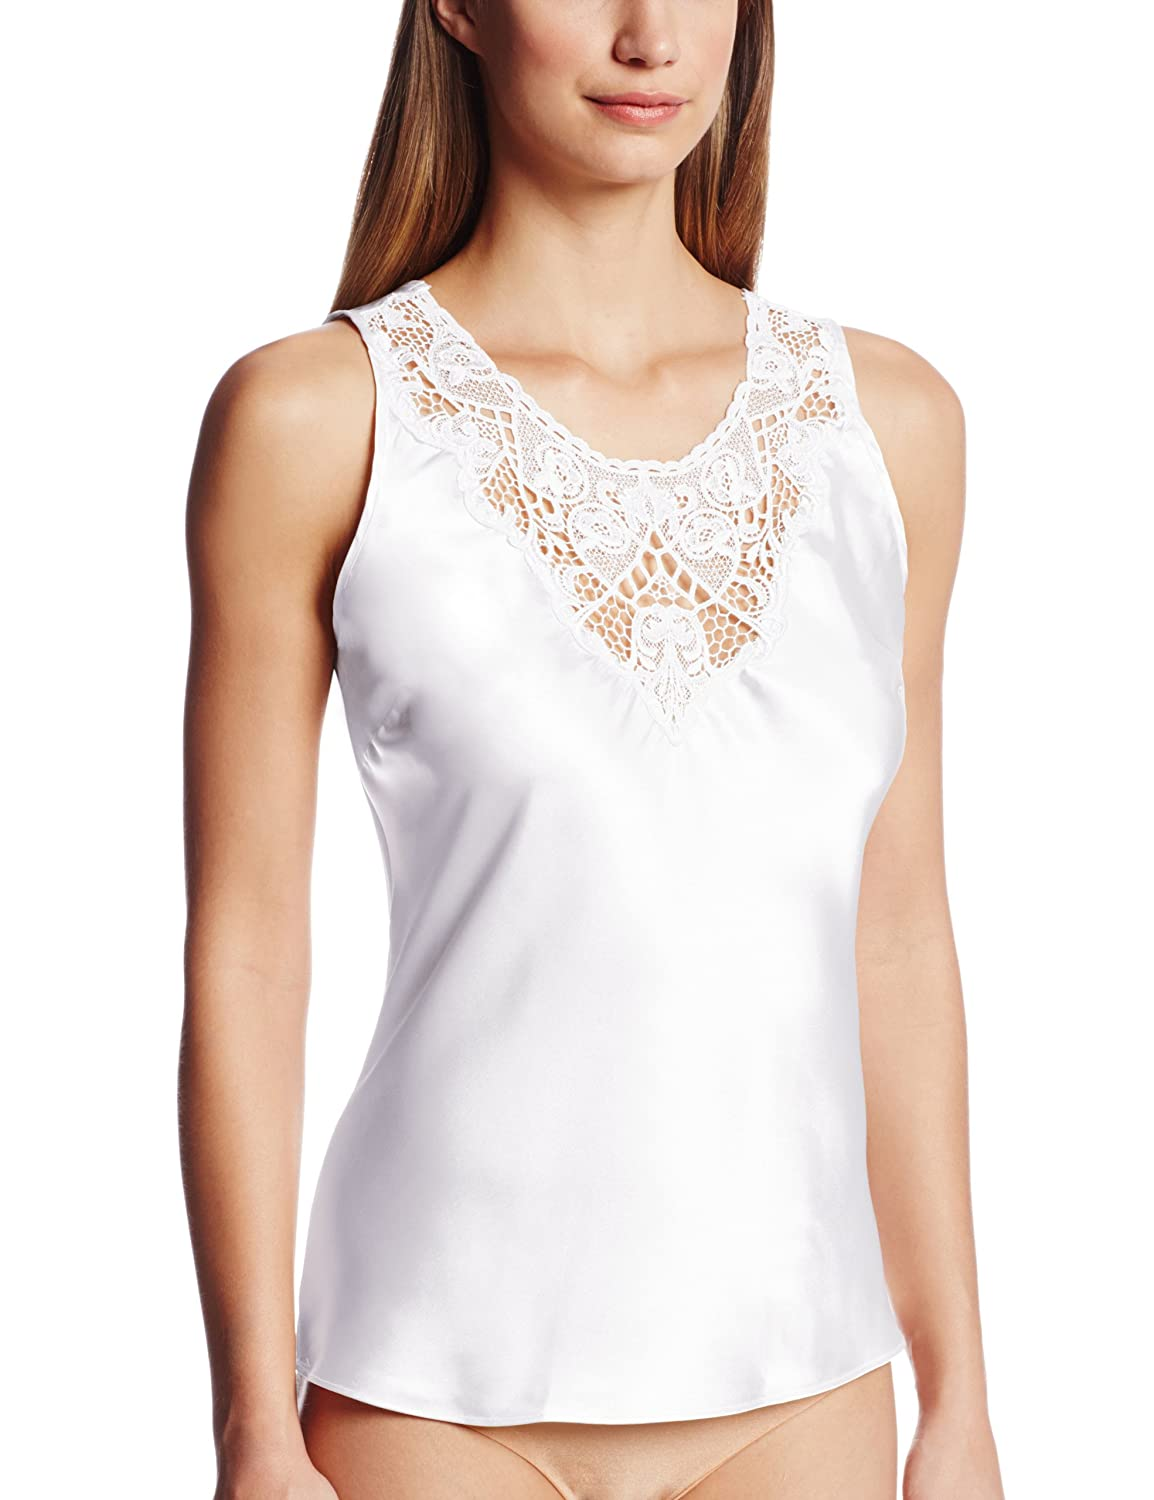 Cinema Etoile Women's Charmeuse Camisole with Medallion Lace Cinema Etoile Women' s IA 640107